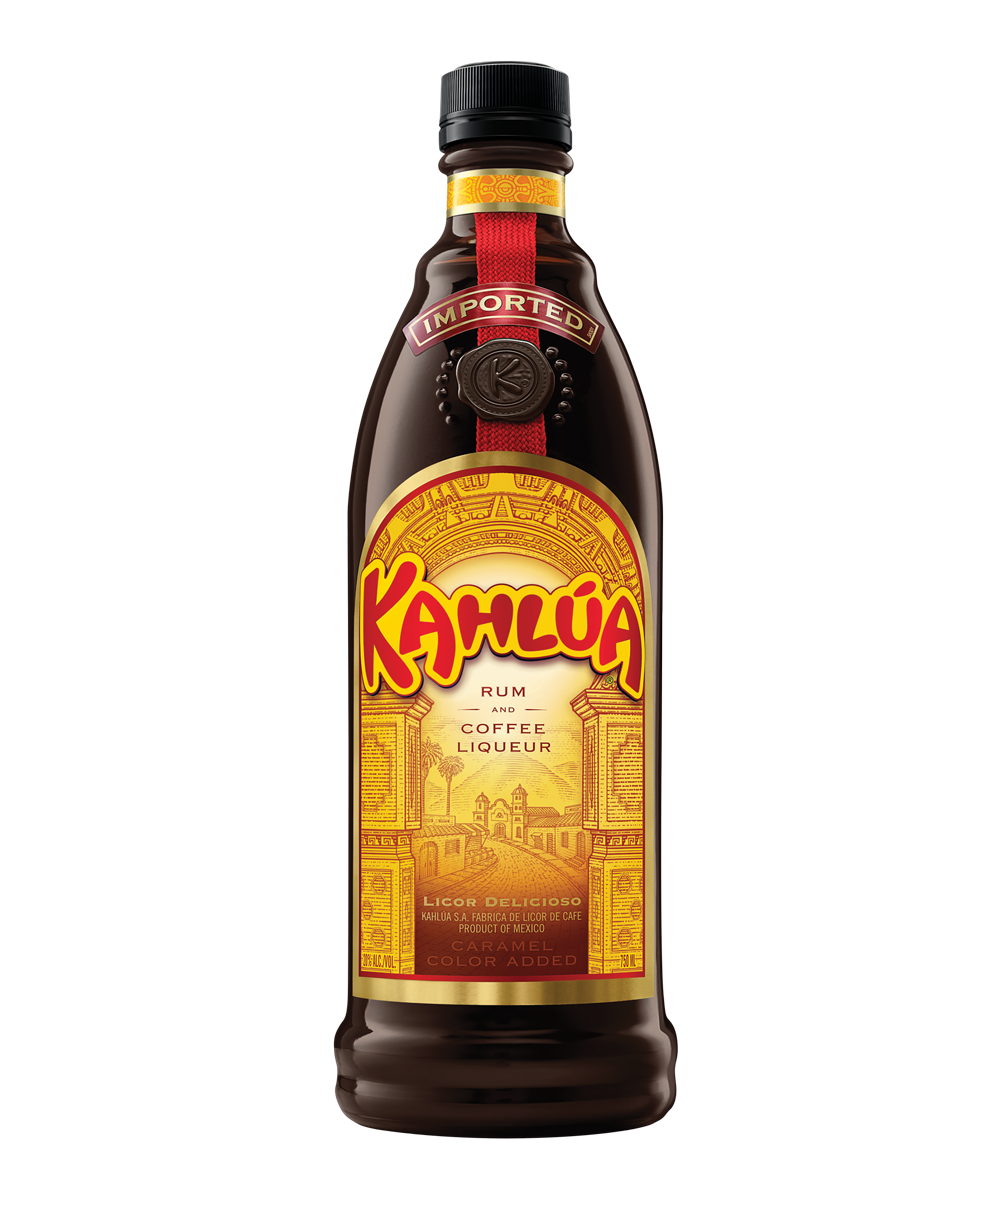 Kahlua, A Coffee Liquor. It's Nice To Drink With Ice, Or